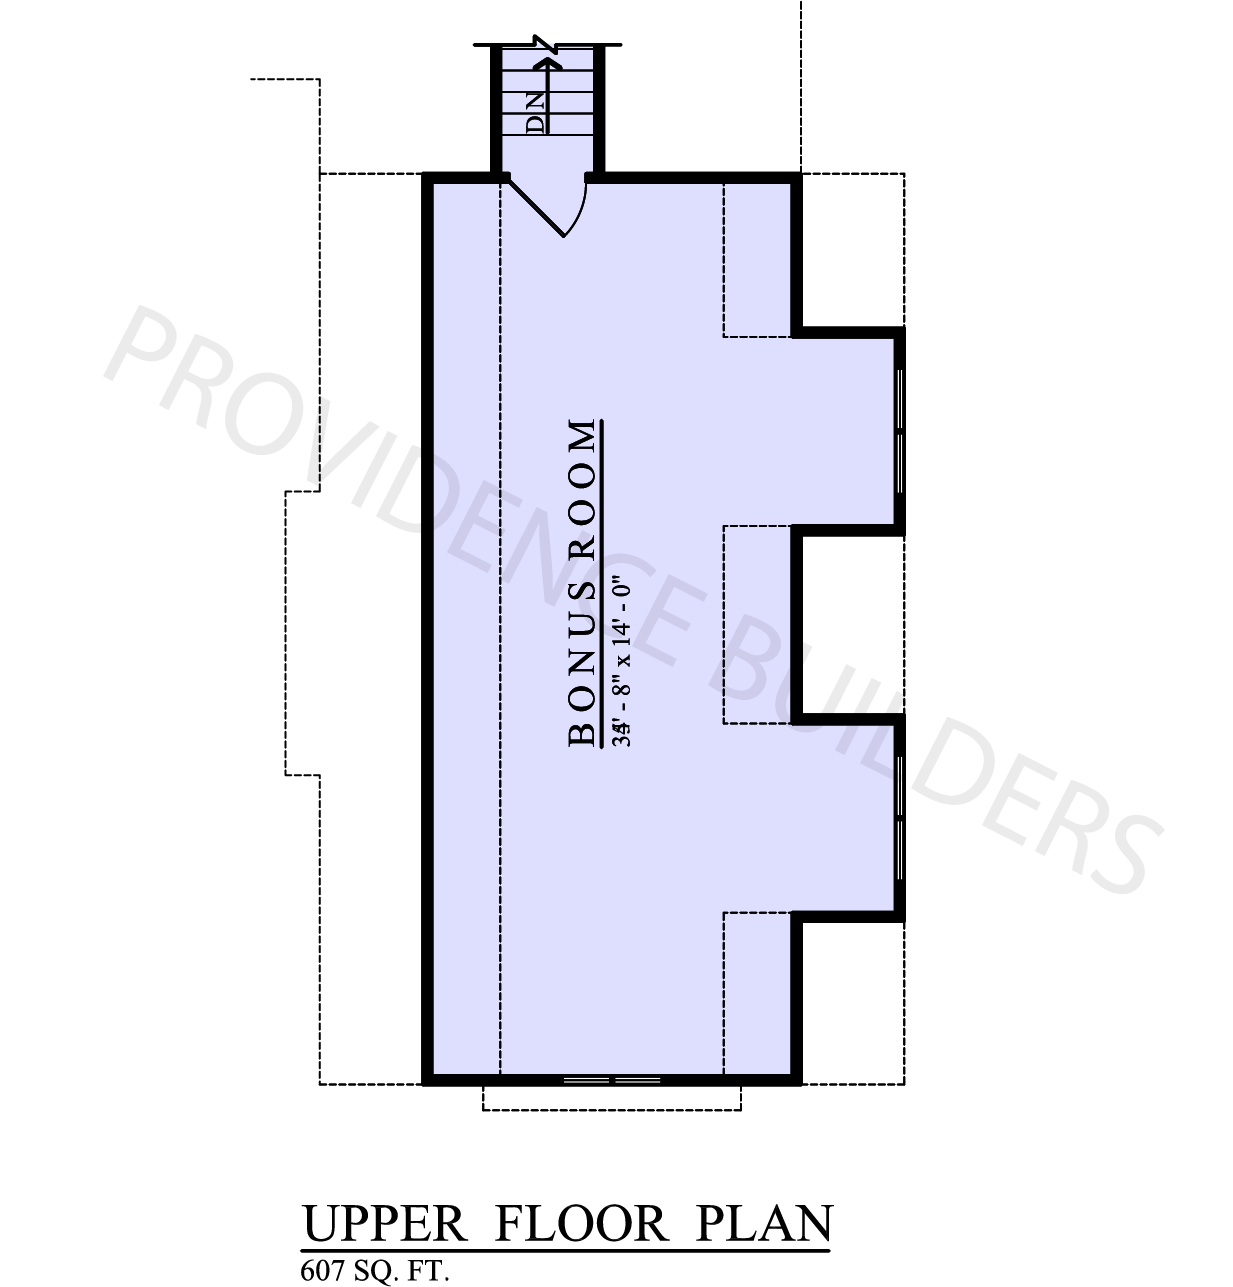 Woodhall II Upper Plan